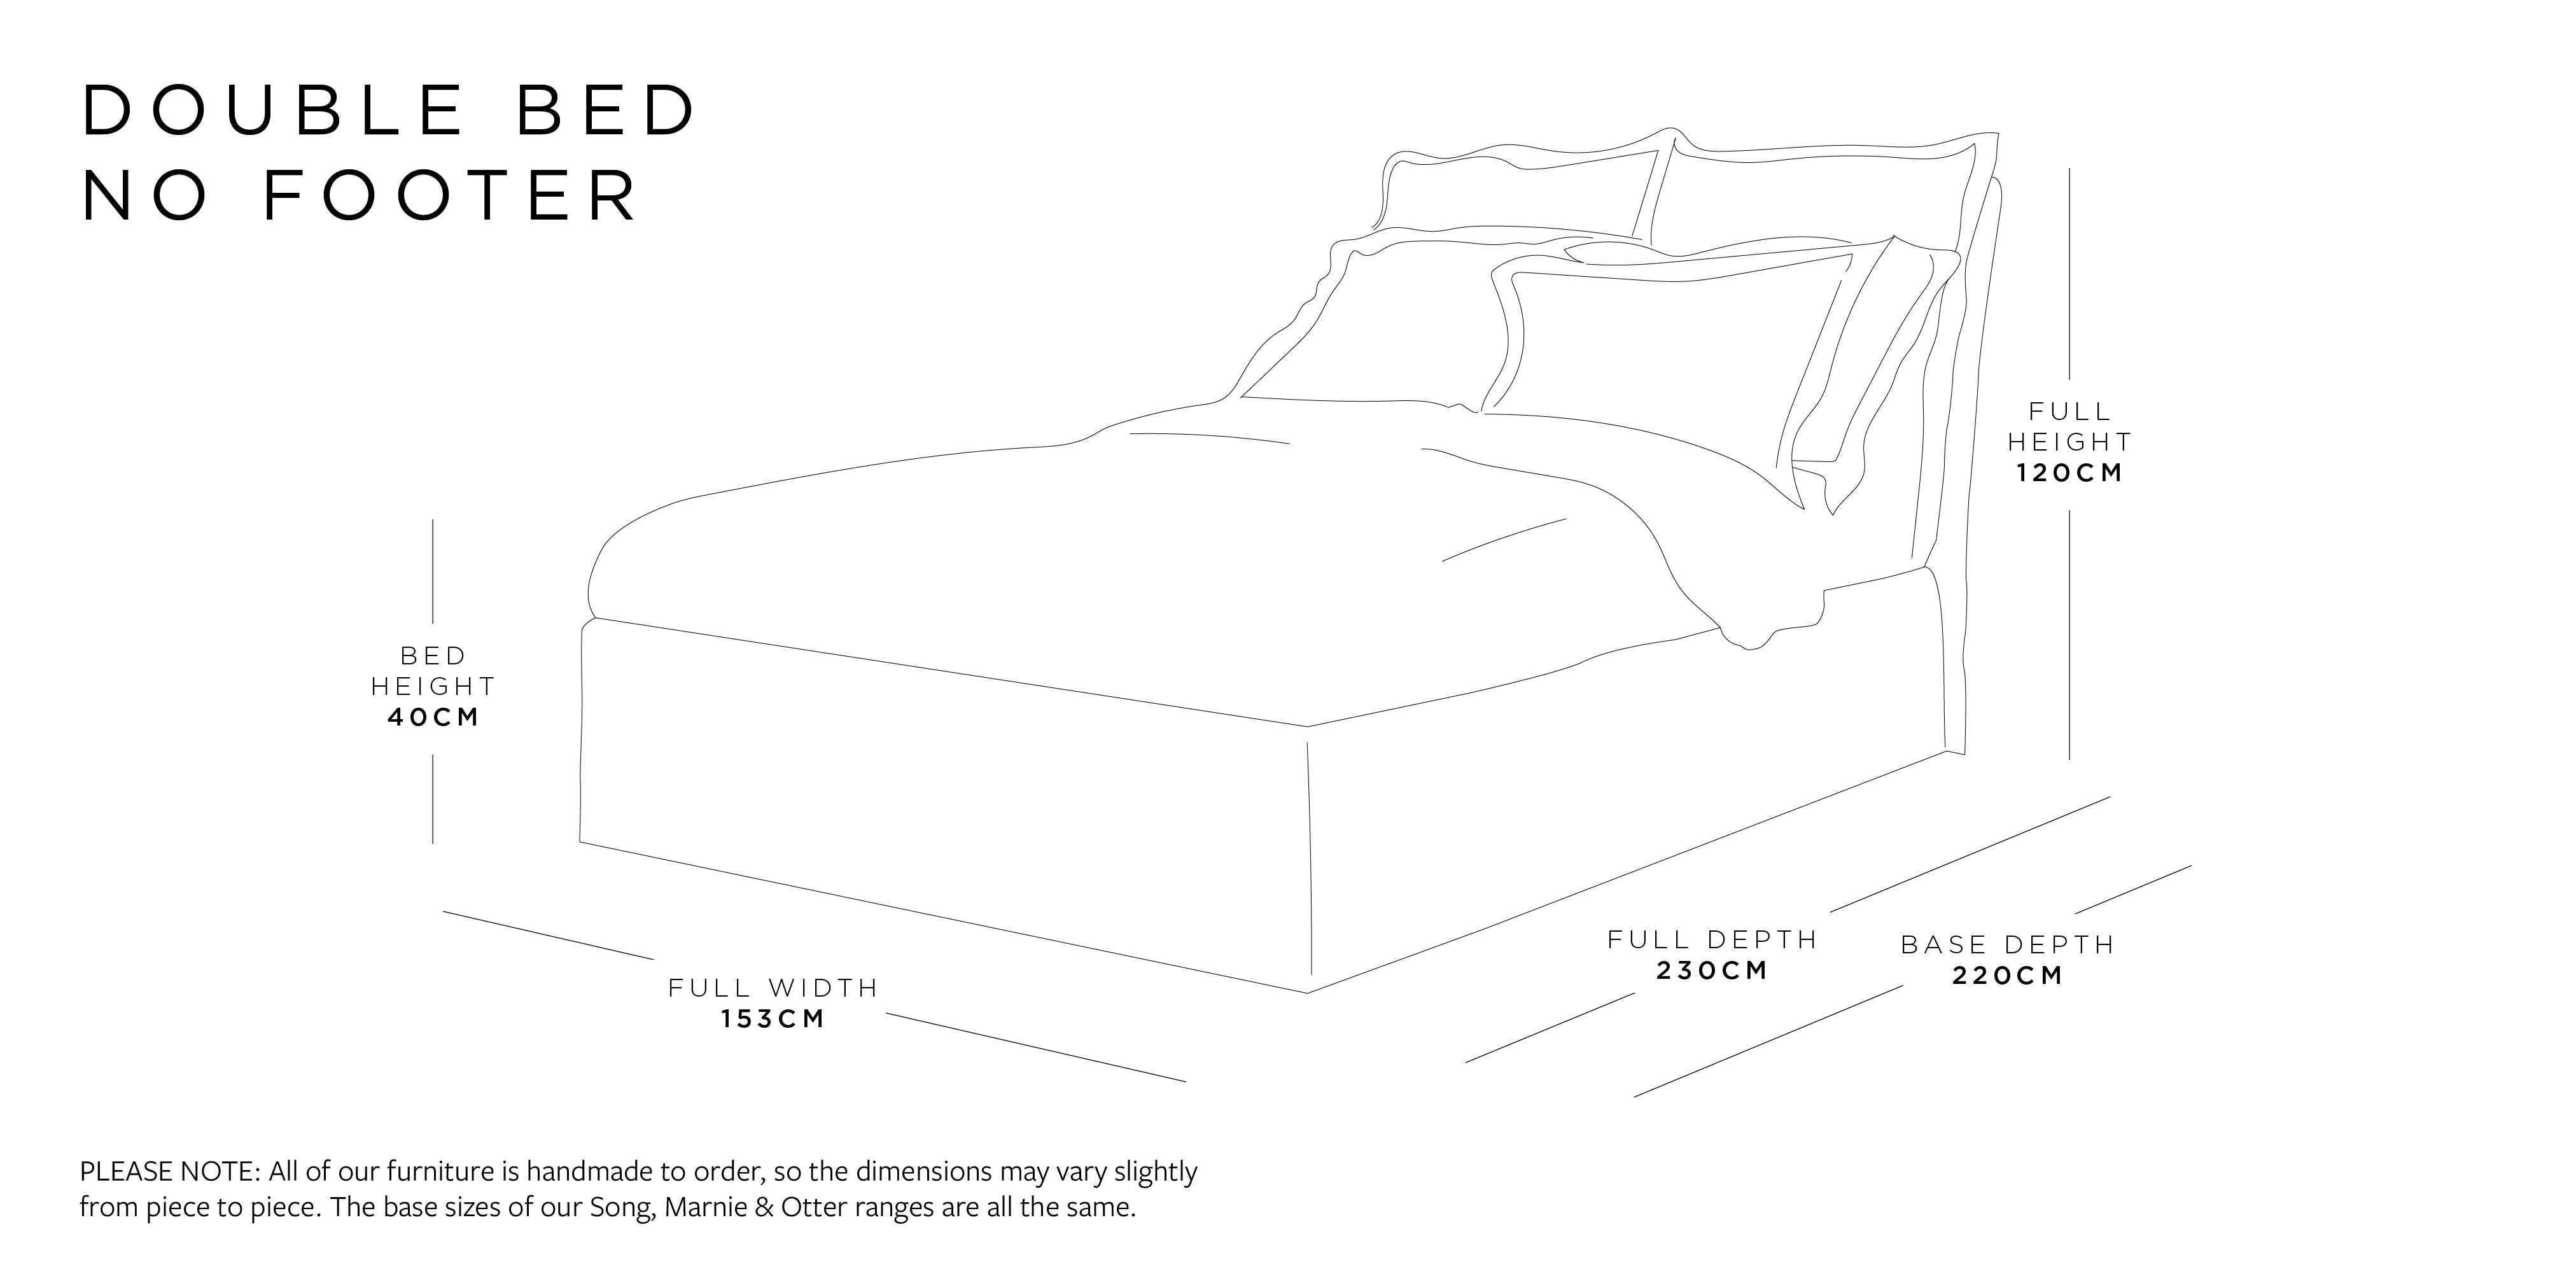 Double Bed Without Footer Dimensions